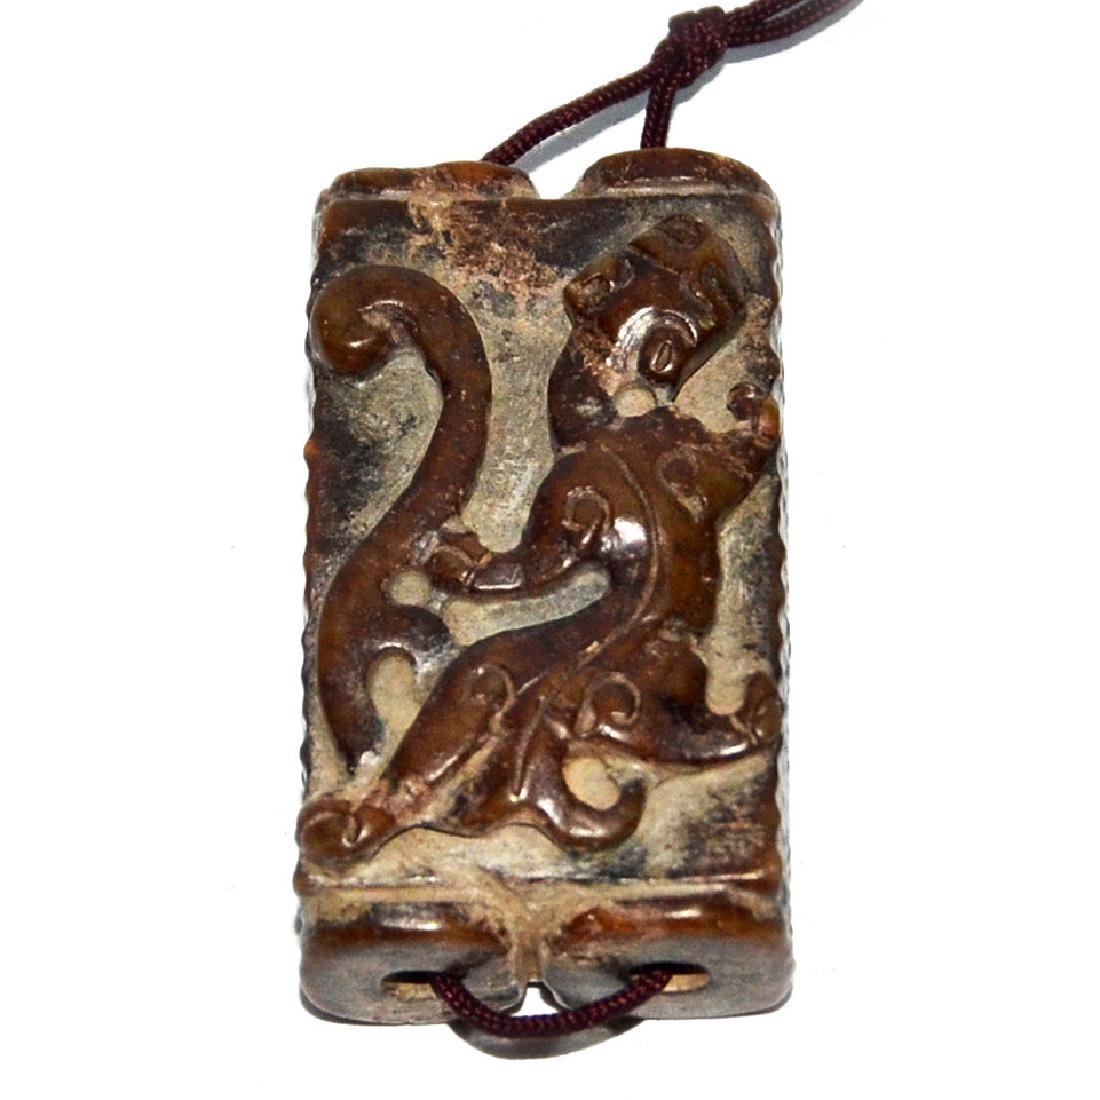 A Small Archaistic Relief Carved Qilin Twin-linked Jade